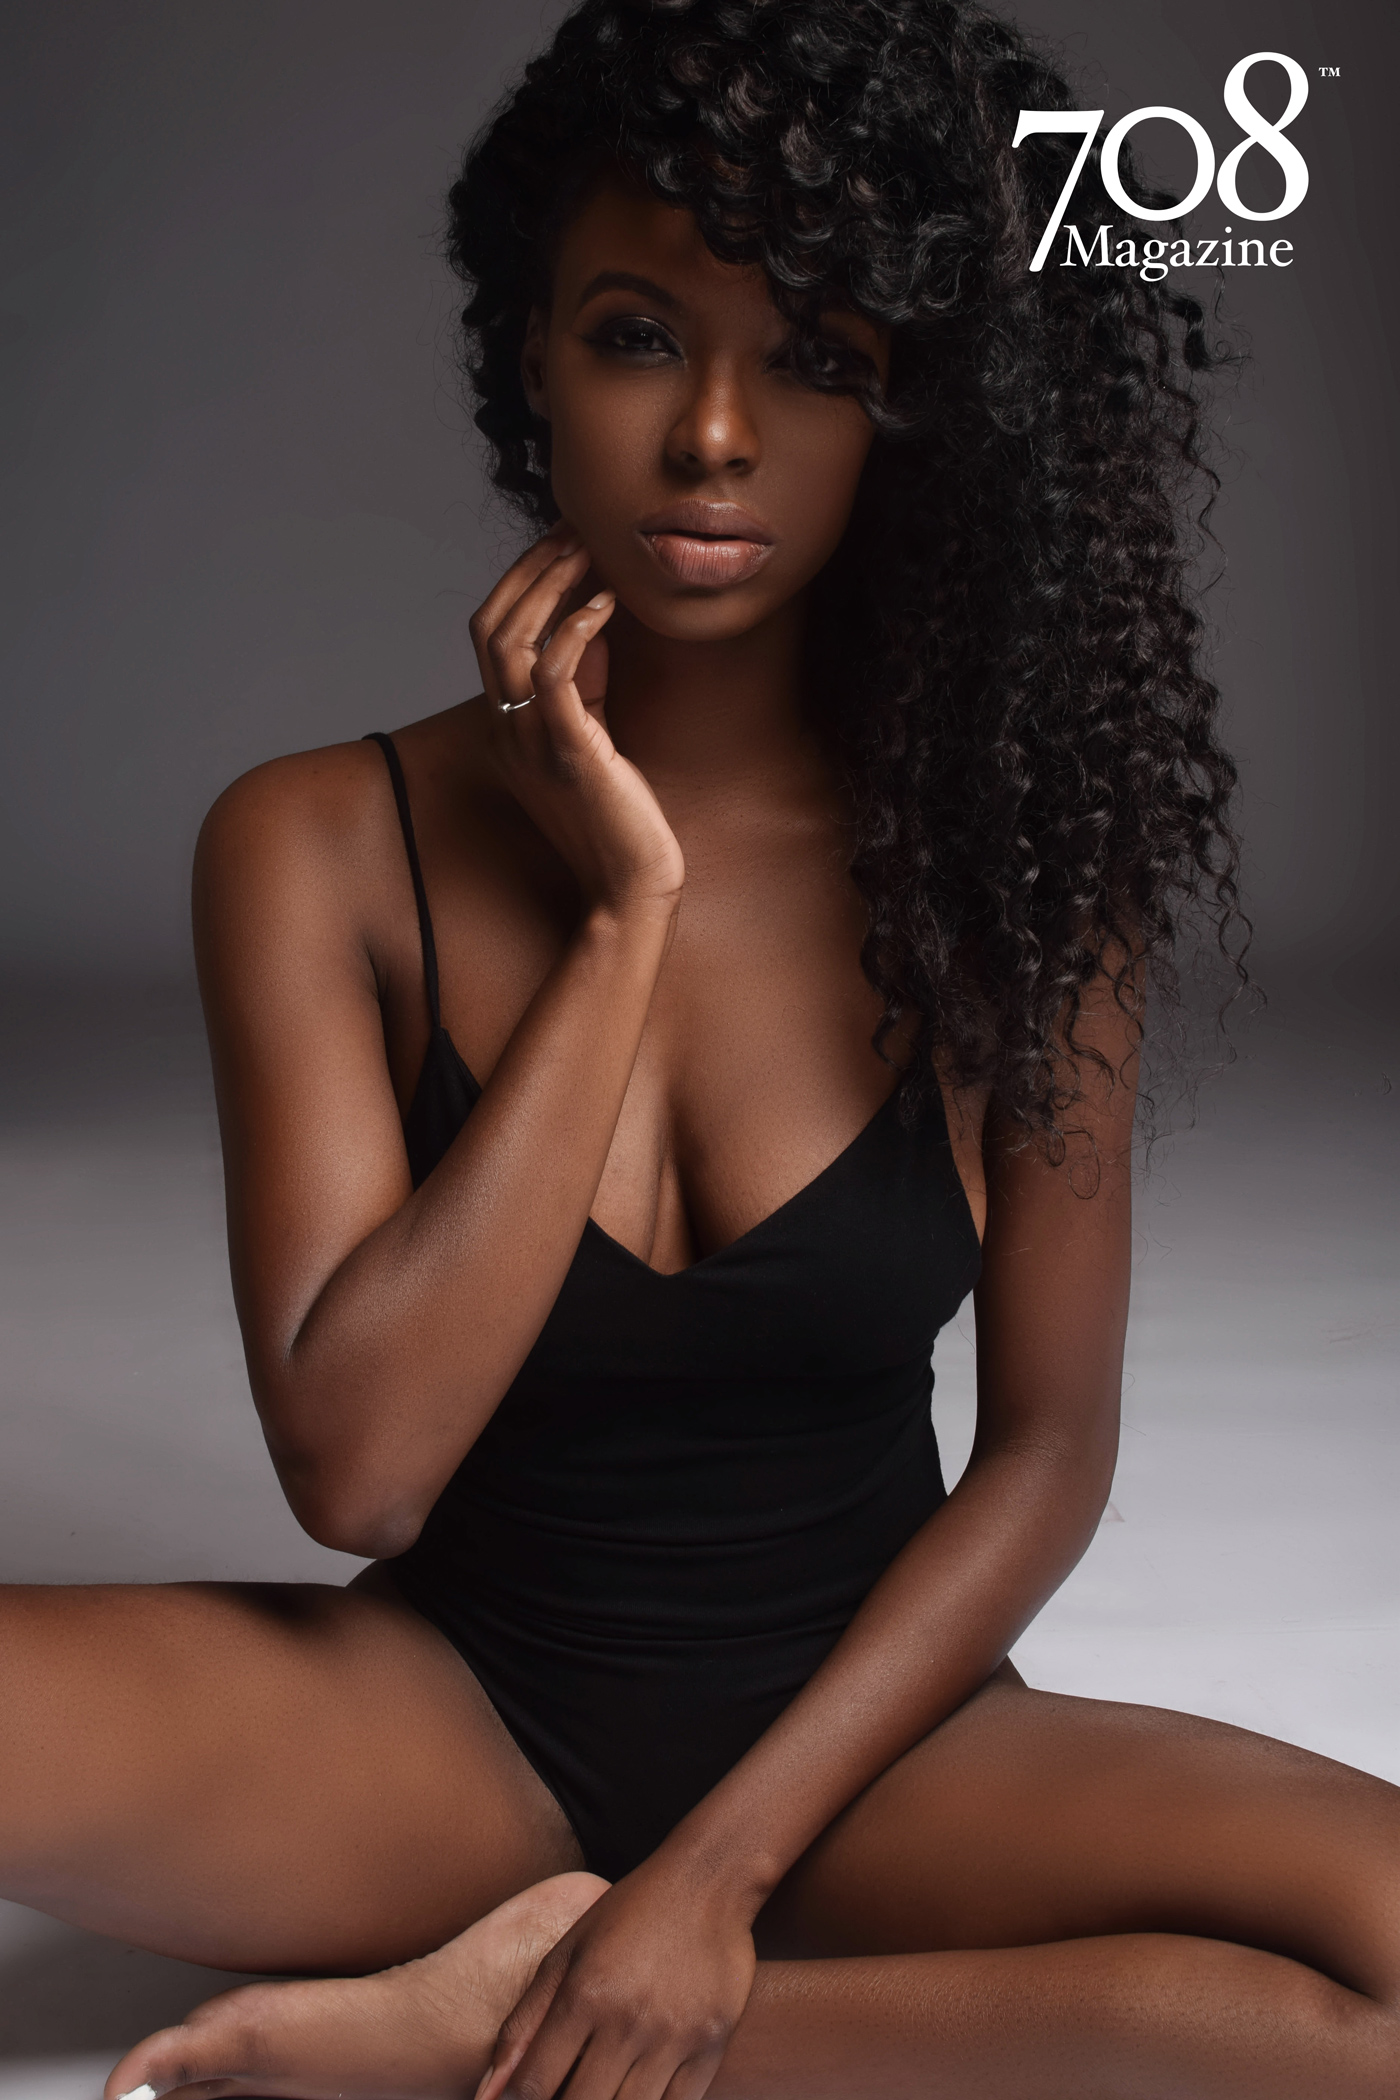 Ebony models